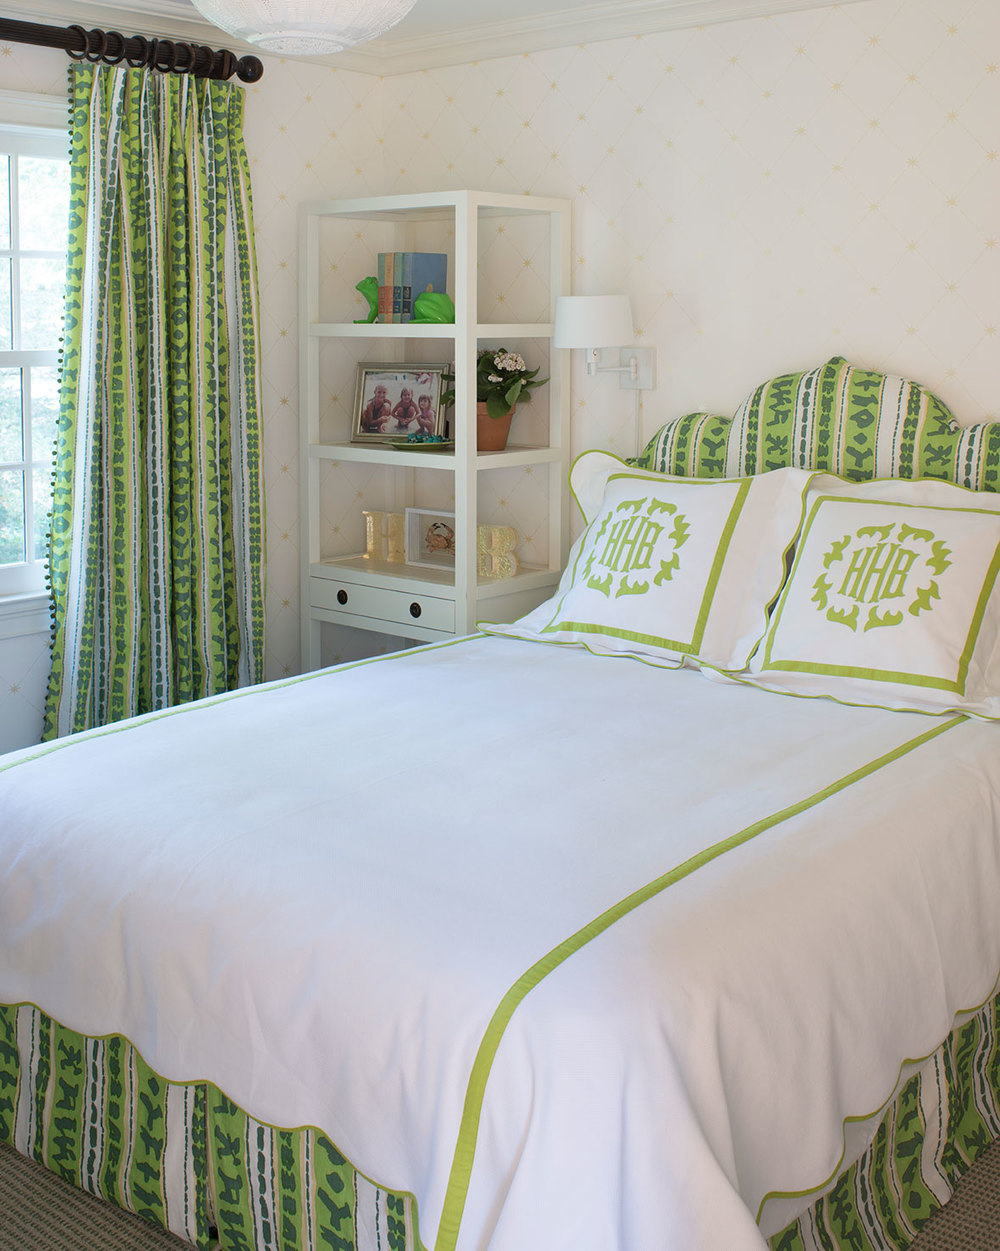 China Seas Abaco Stripe bed and curtains